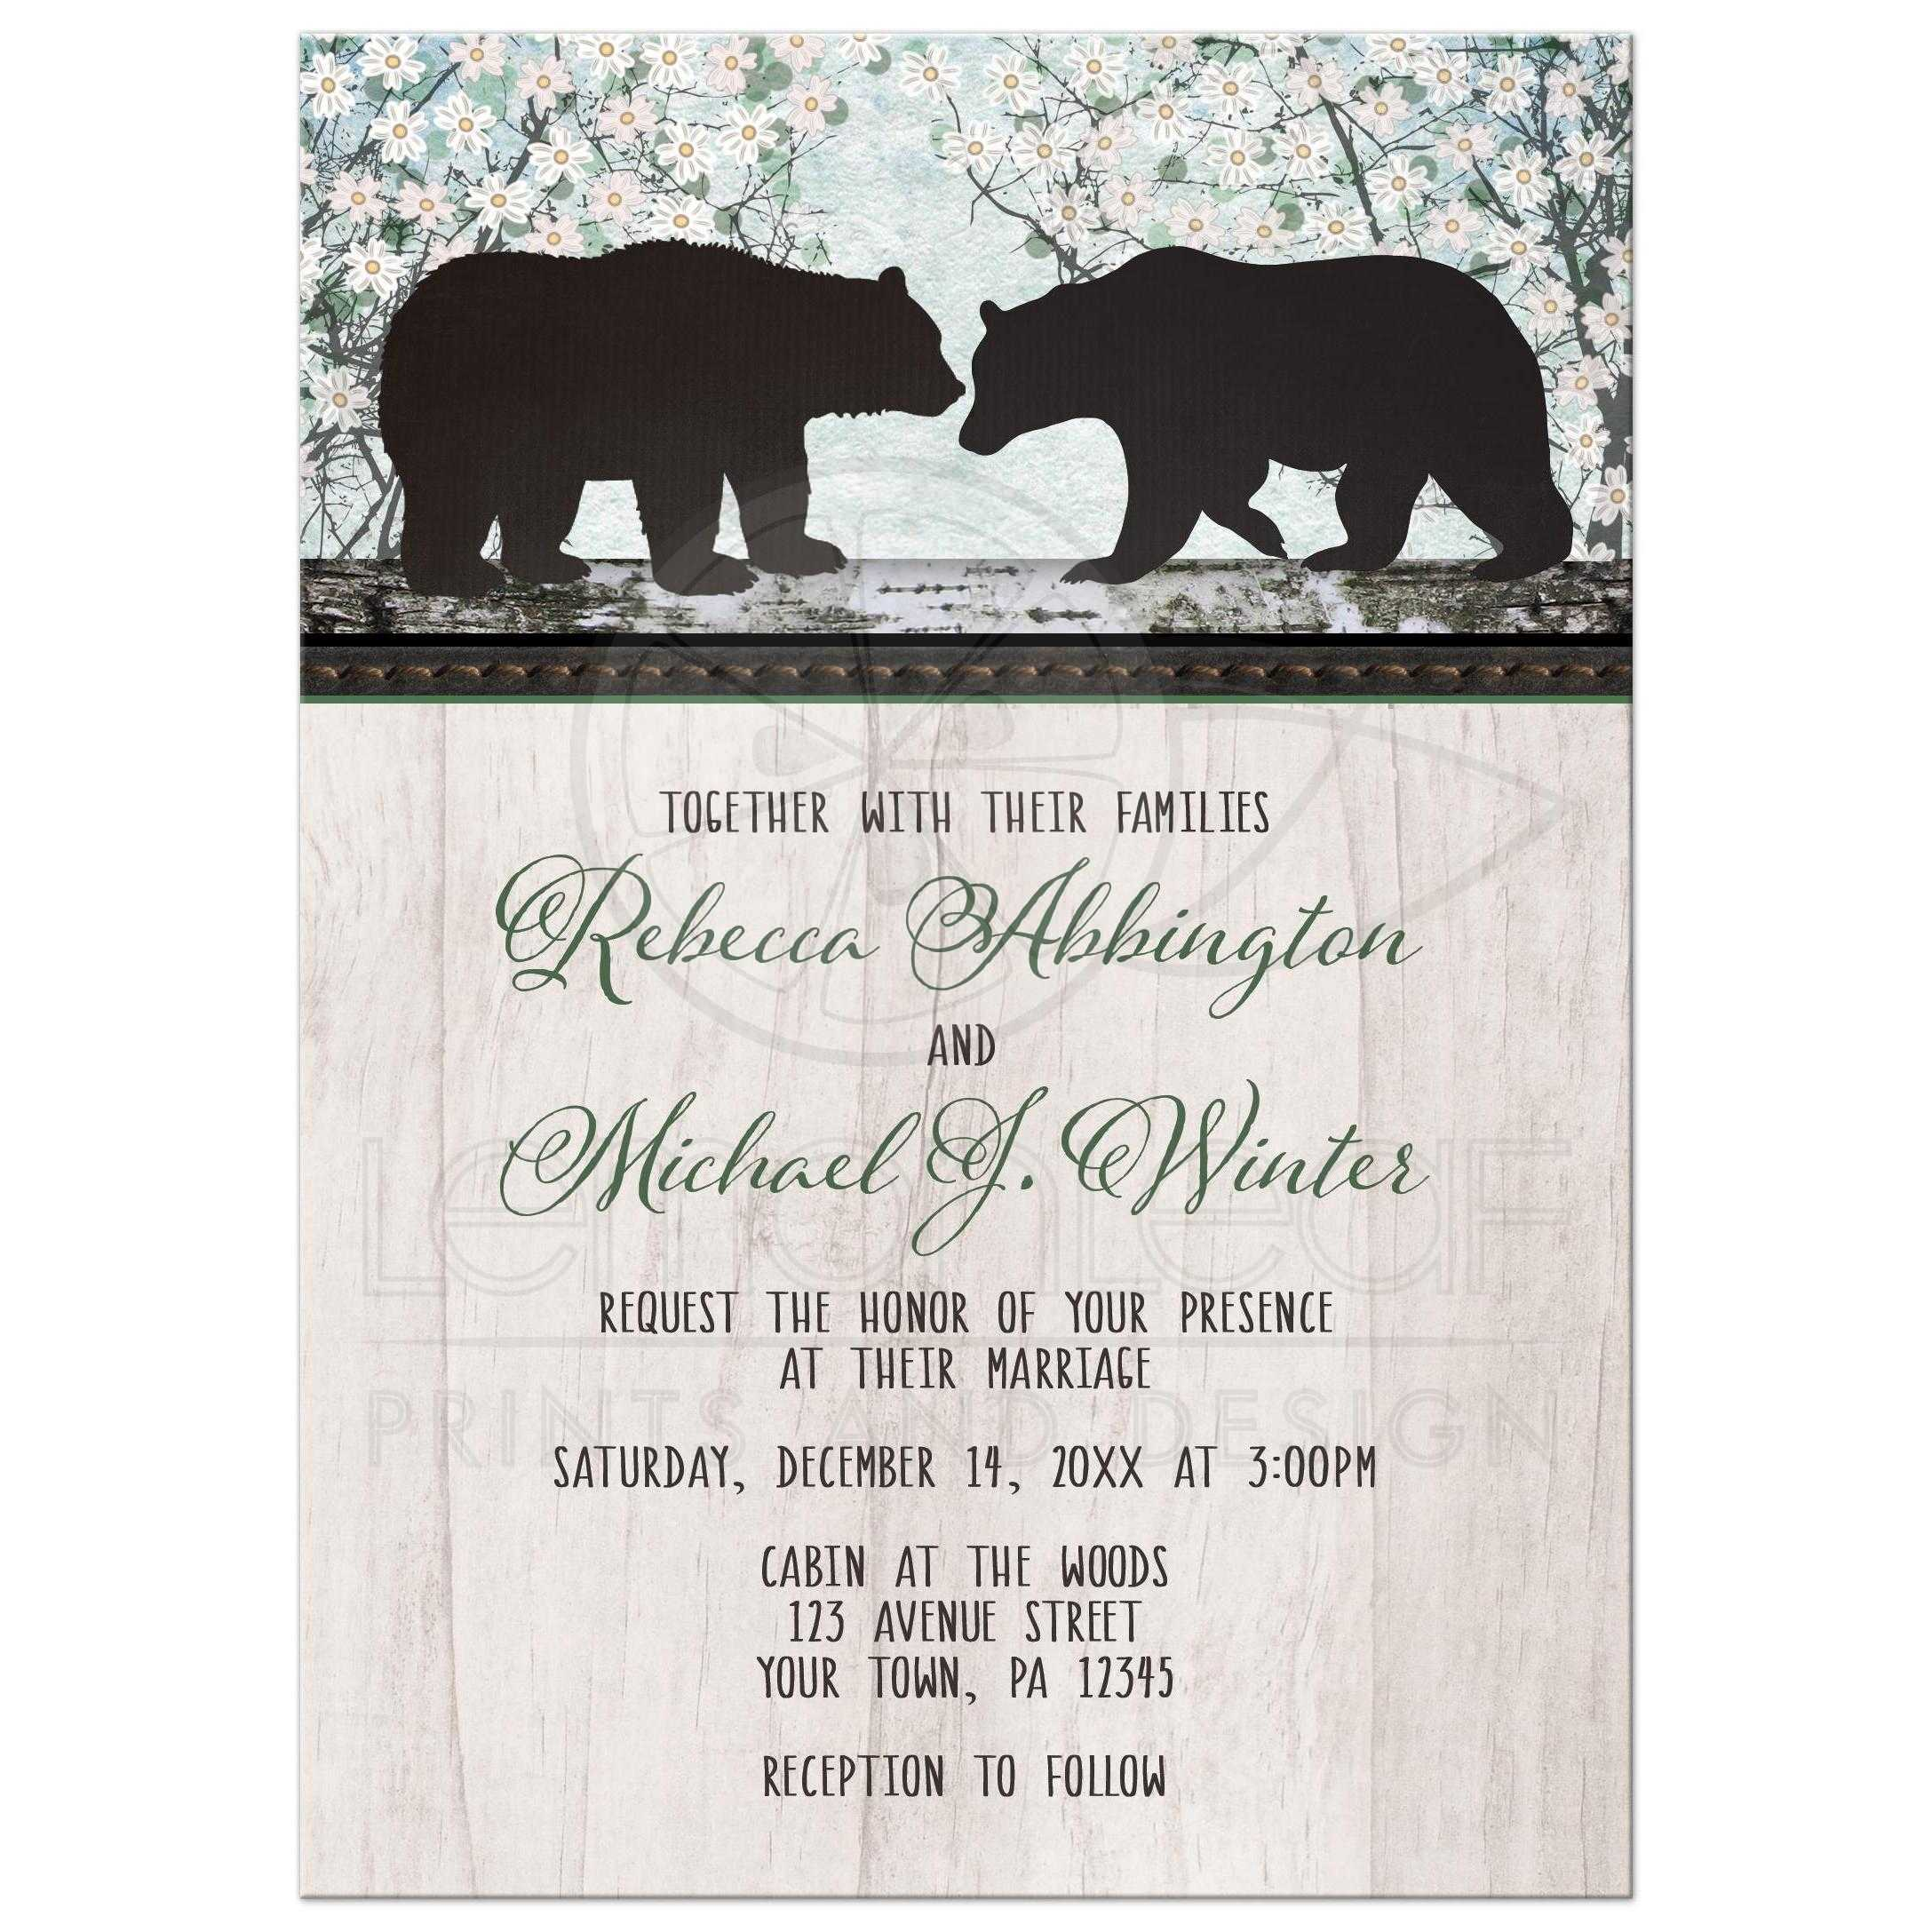 Wedding Invitations - Rustic Bear Floral Wood